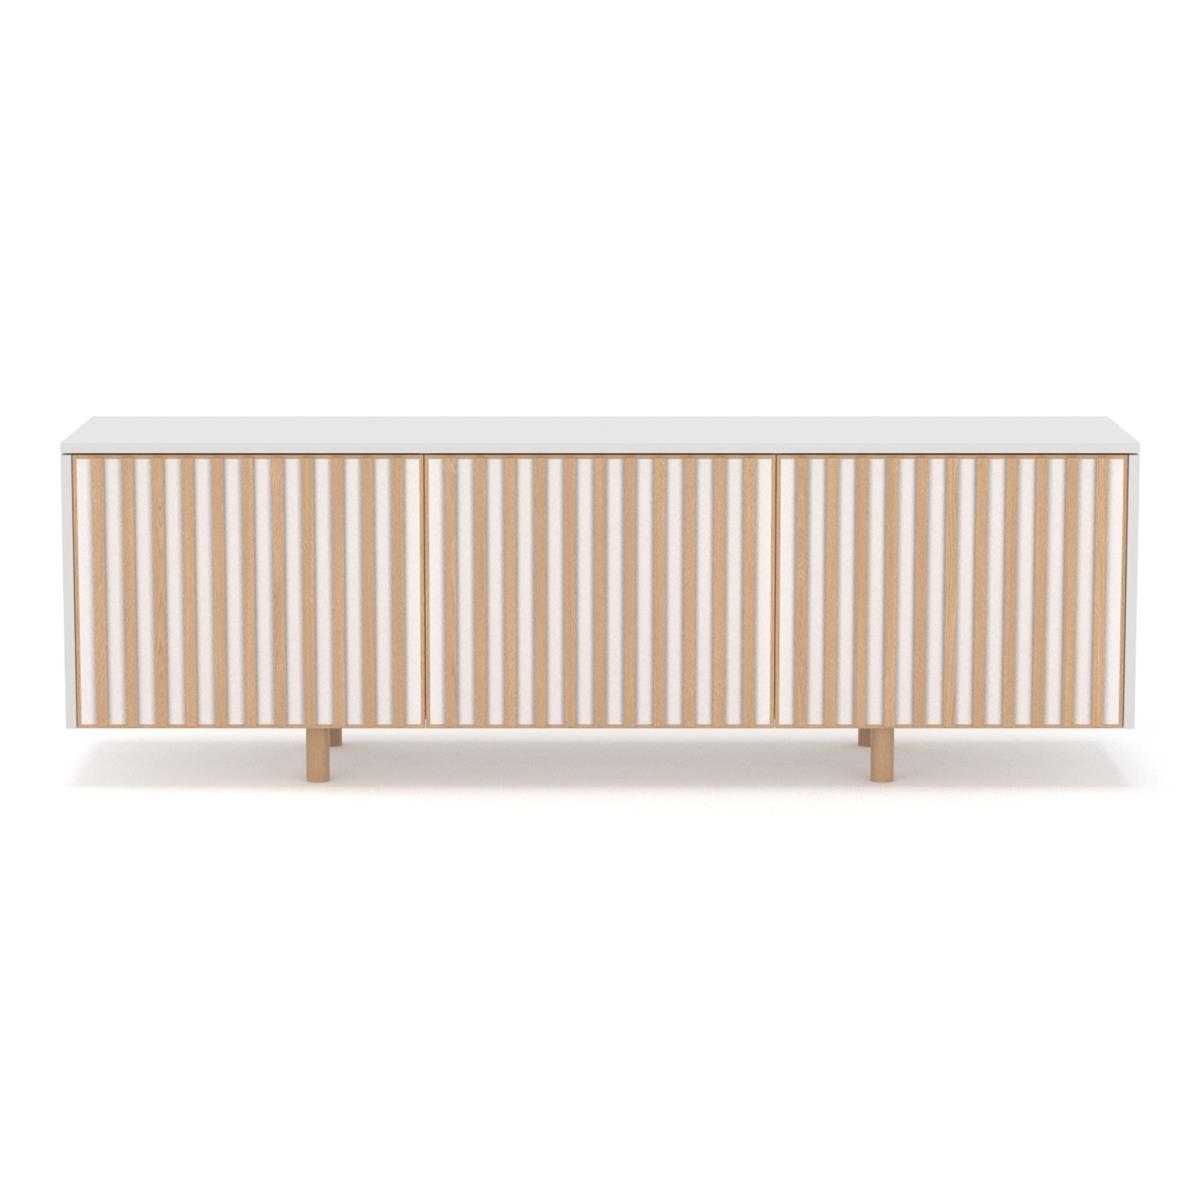 dB Silent Sideboard - White & Oak legs